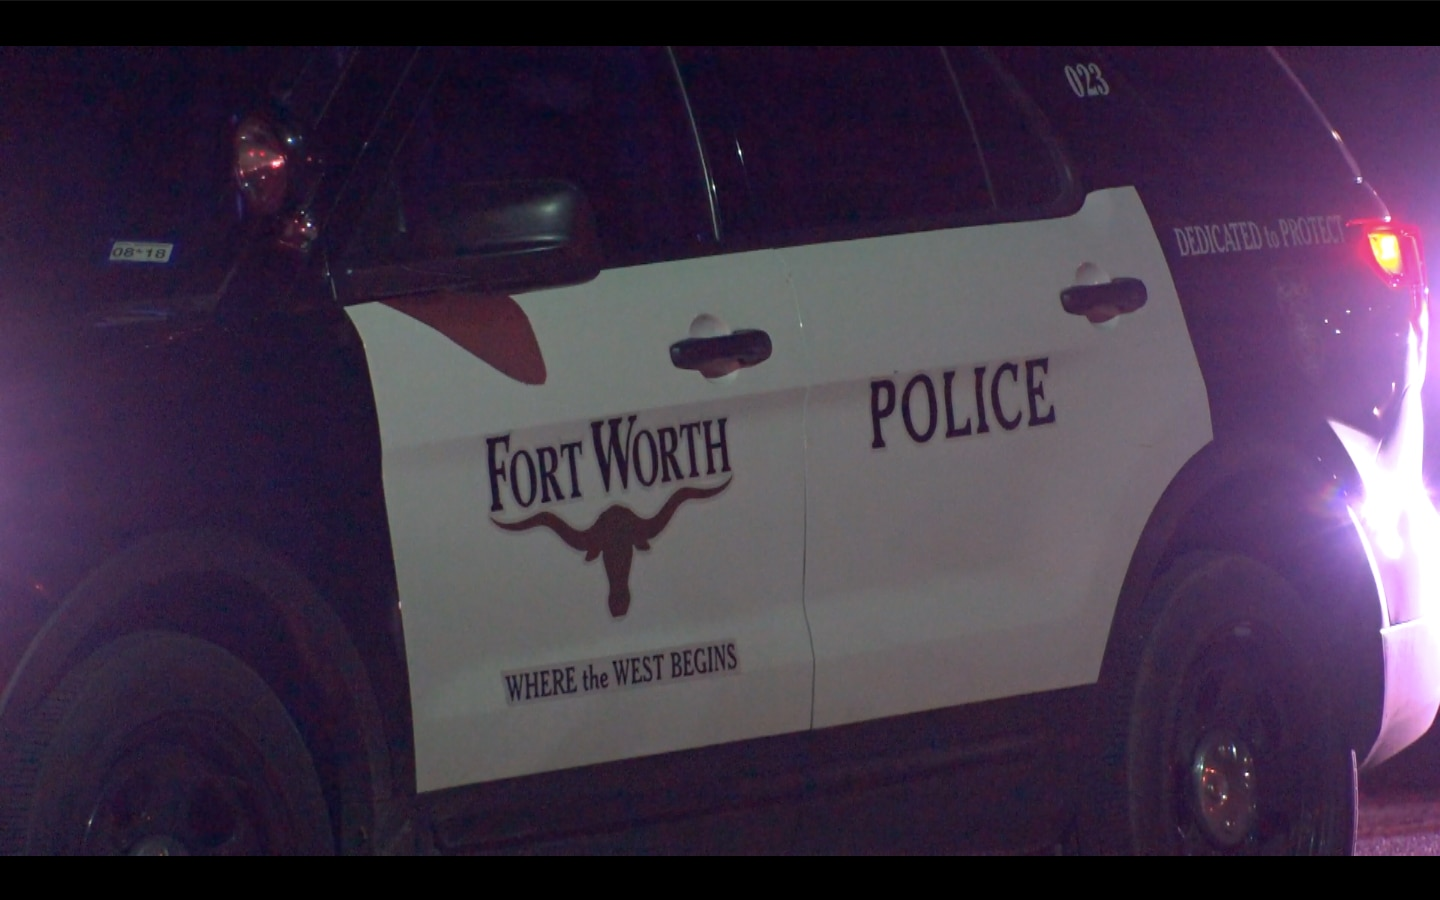 Fort Worth homicide detectives are investigating the death of a 3-year-old boy who died from a gunshot wound in his home.